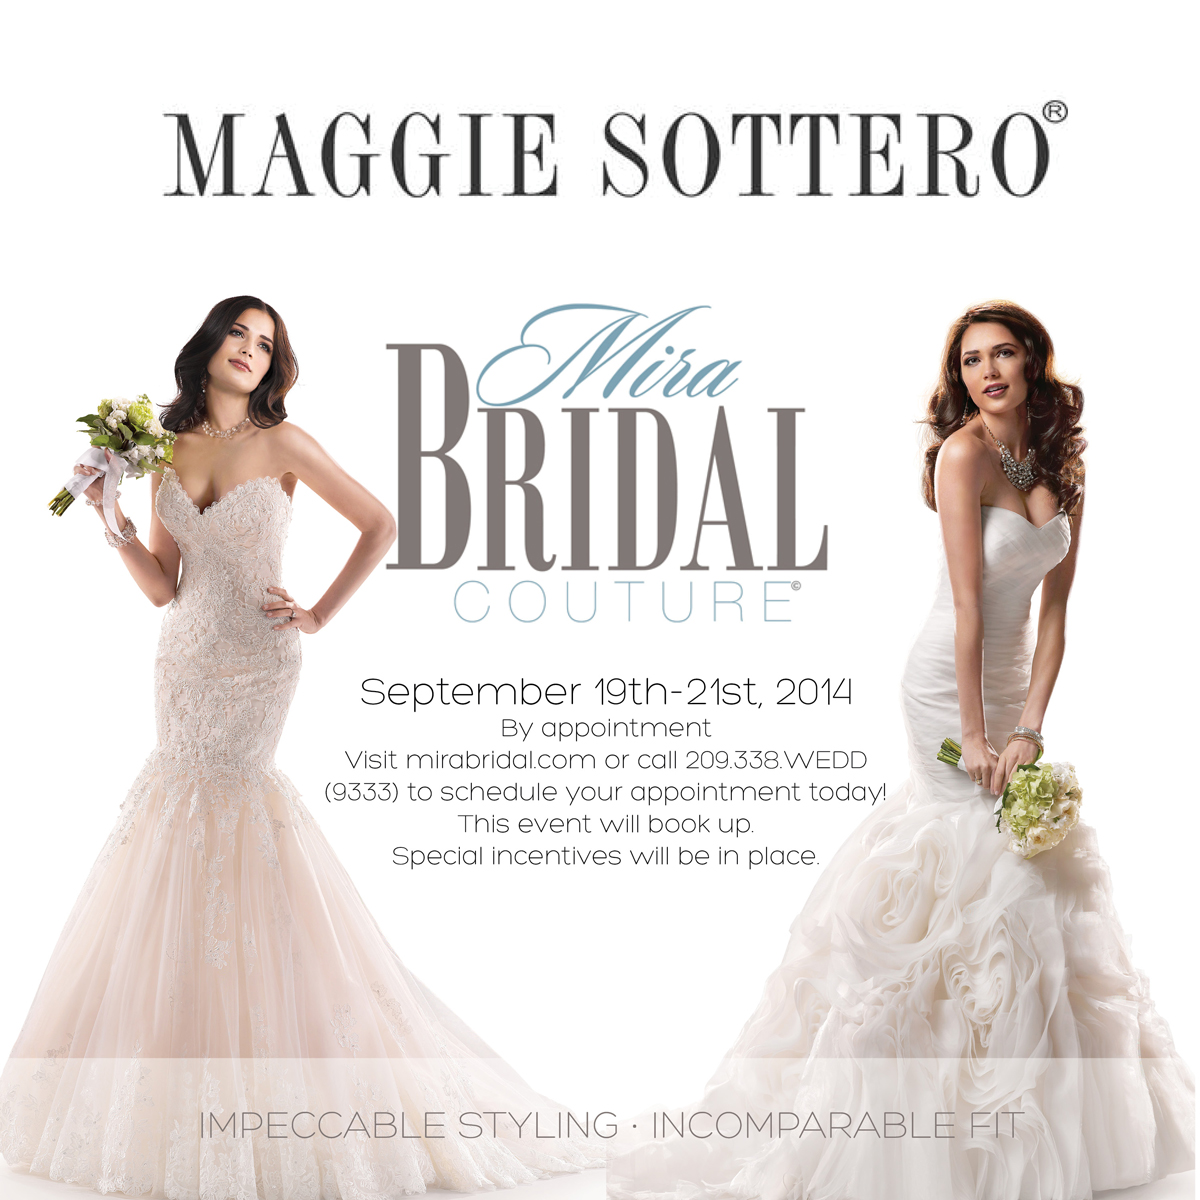 Maggie-Sottero-Trunk-ShoW+Mira-Bridal-Couture